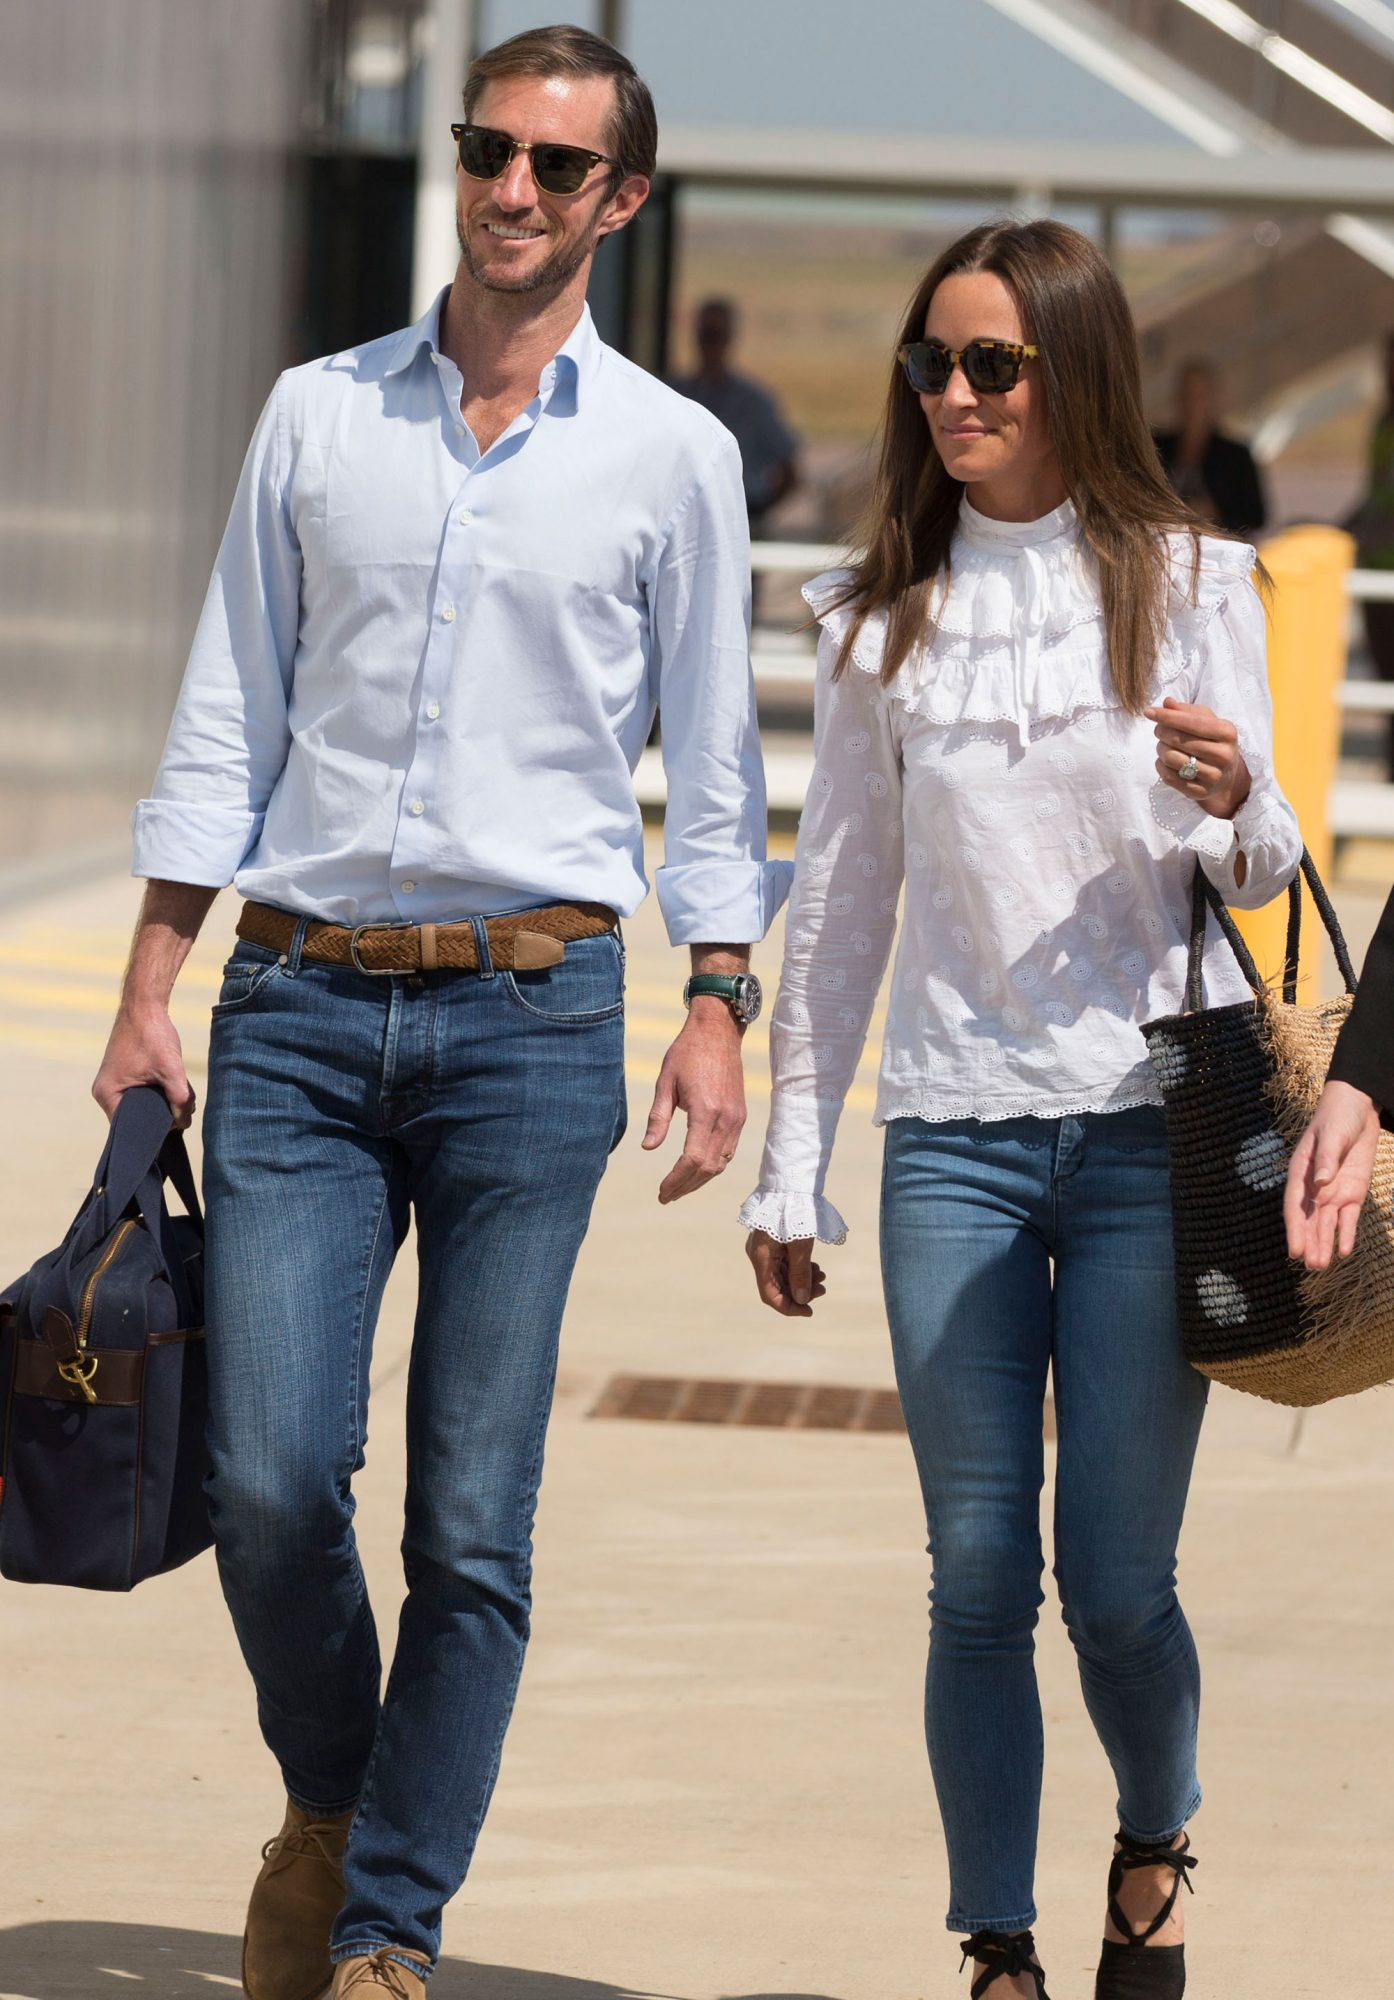 Pippa Middleton & James Matthews Sighting - June 1, 2017